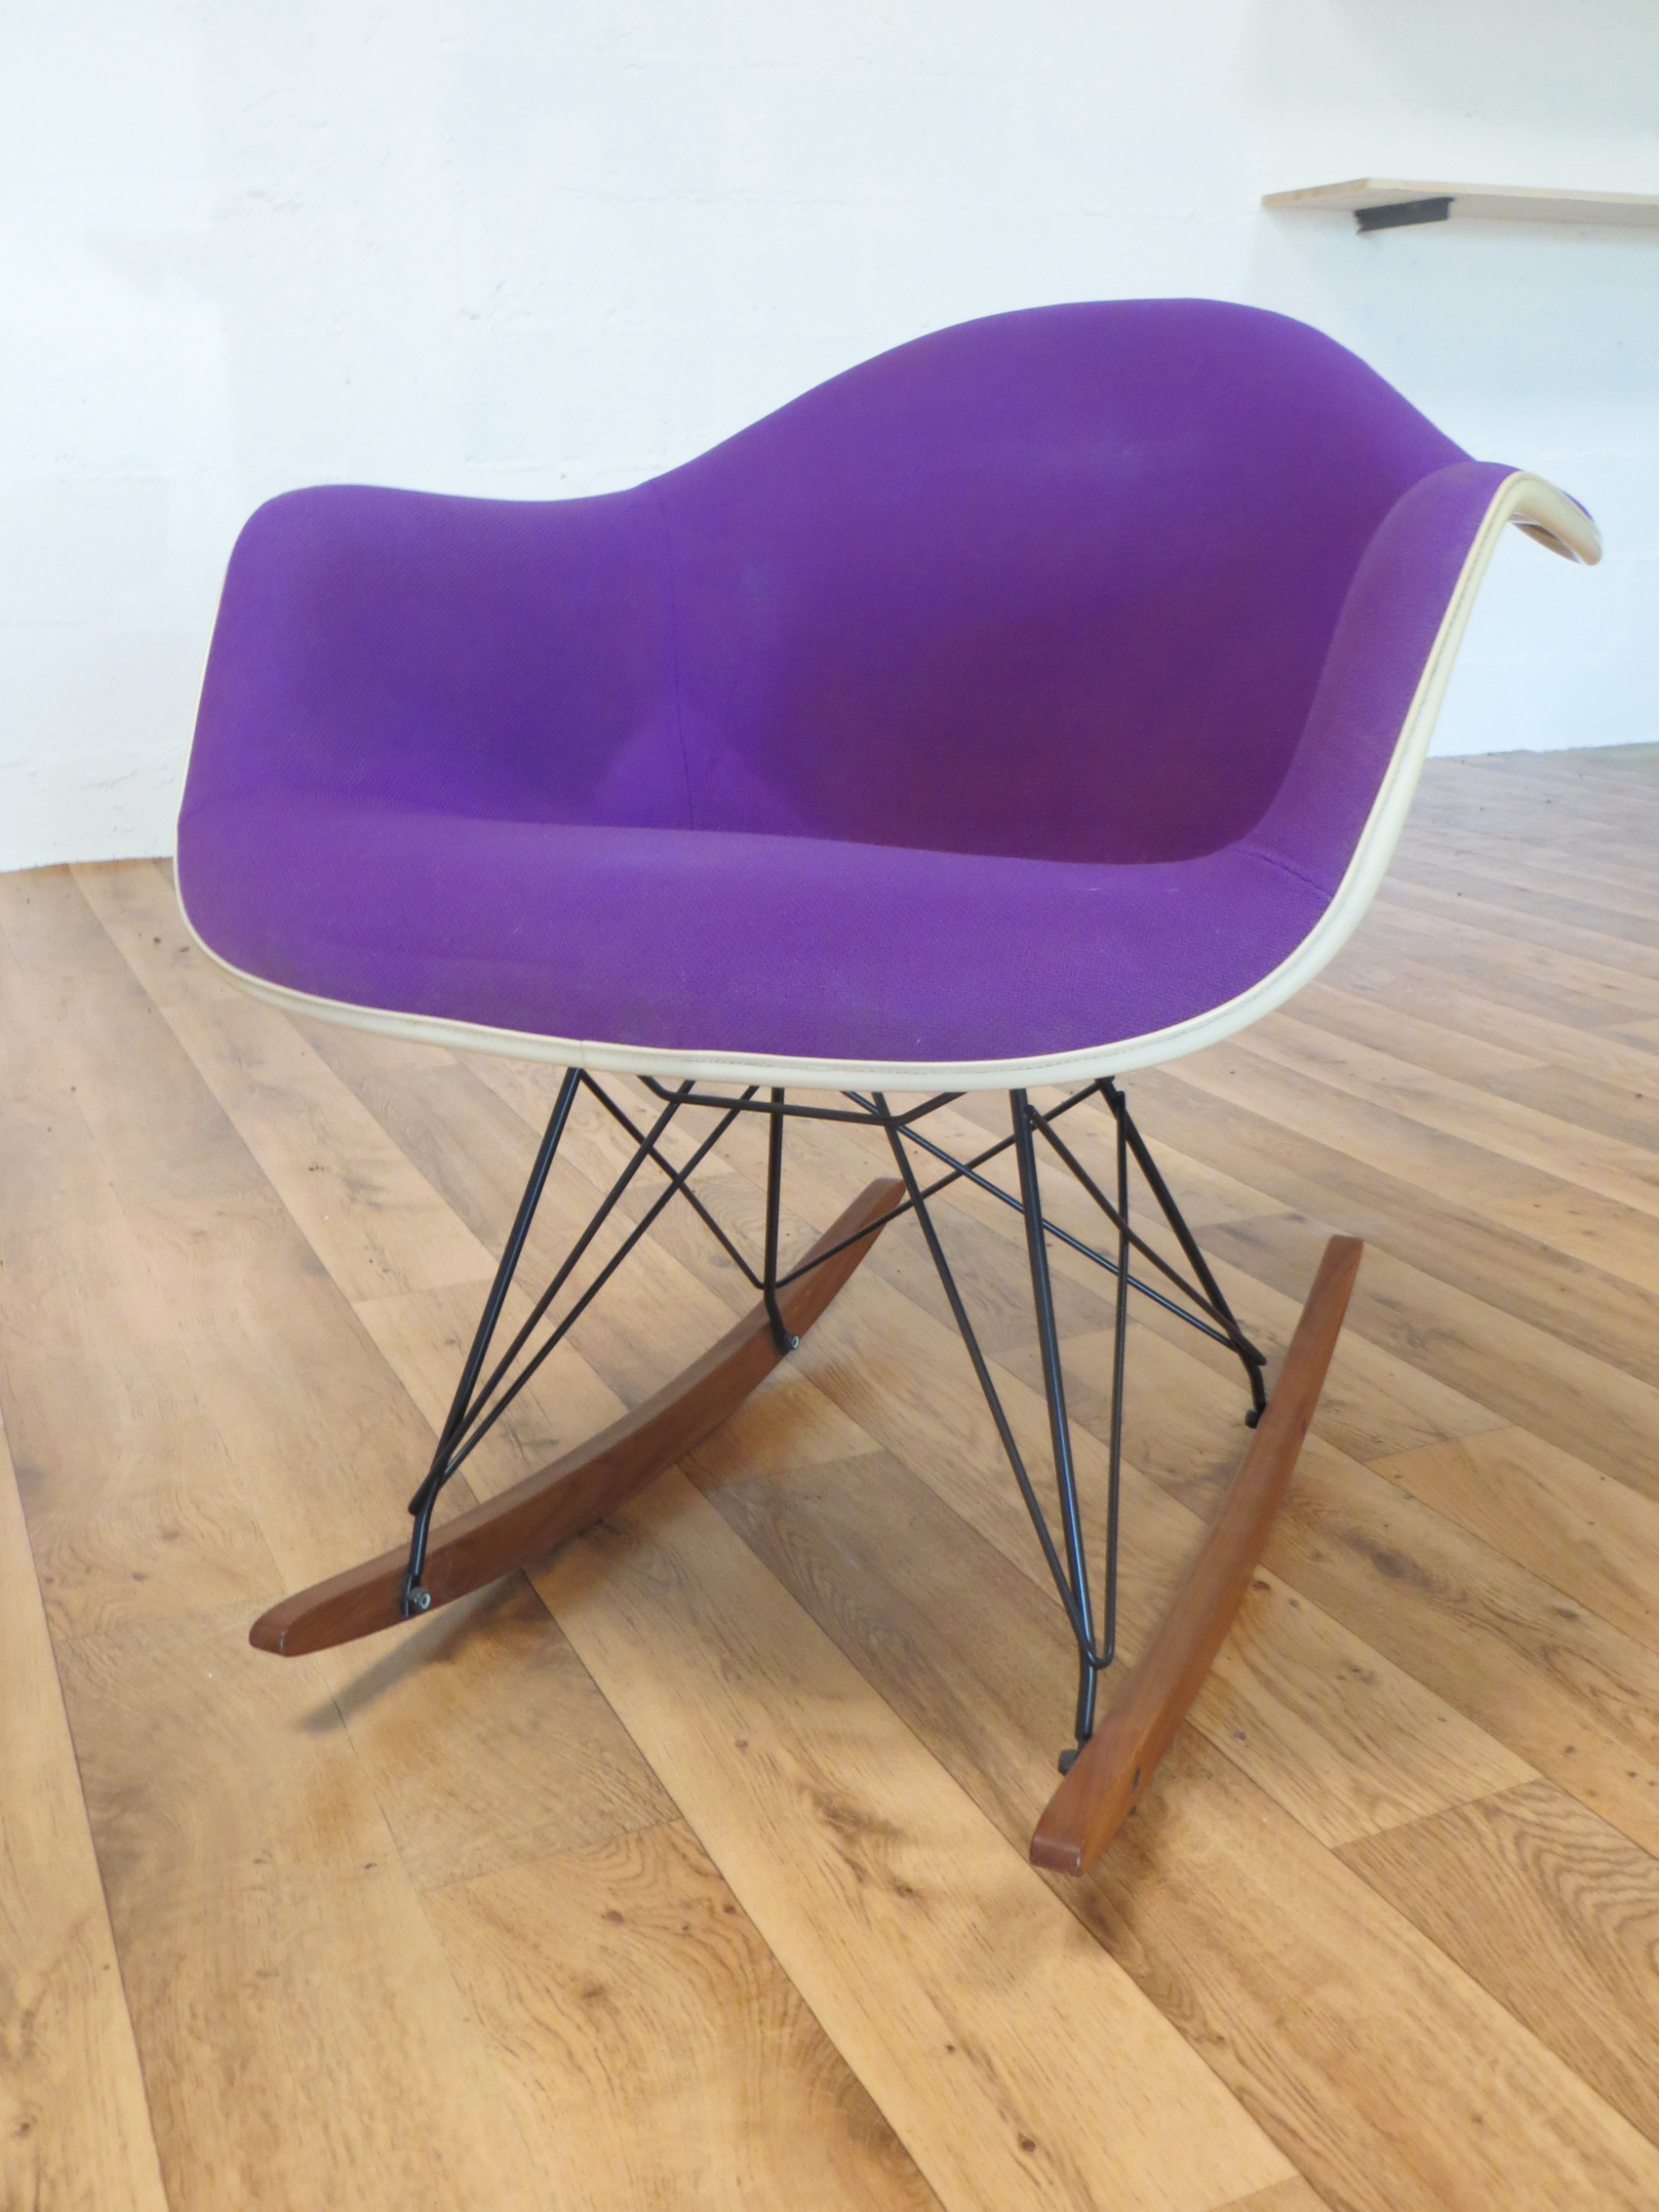 Fauteuil Sixties Fauteuil Rar De Charles And Ray Eames 1960 Magic Sixties